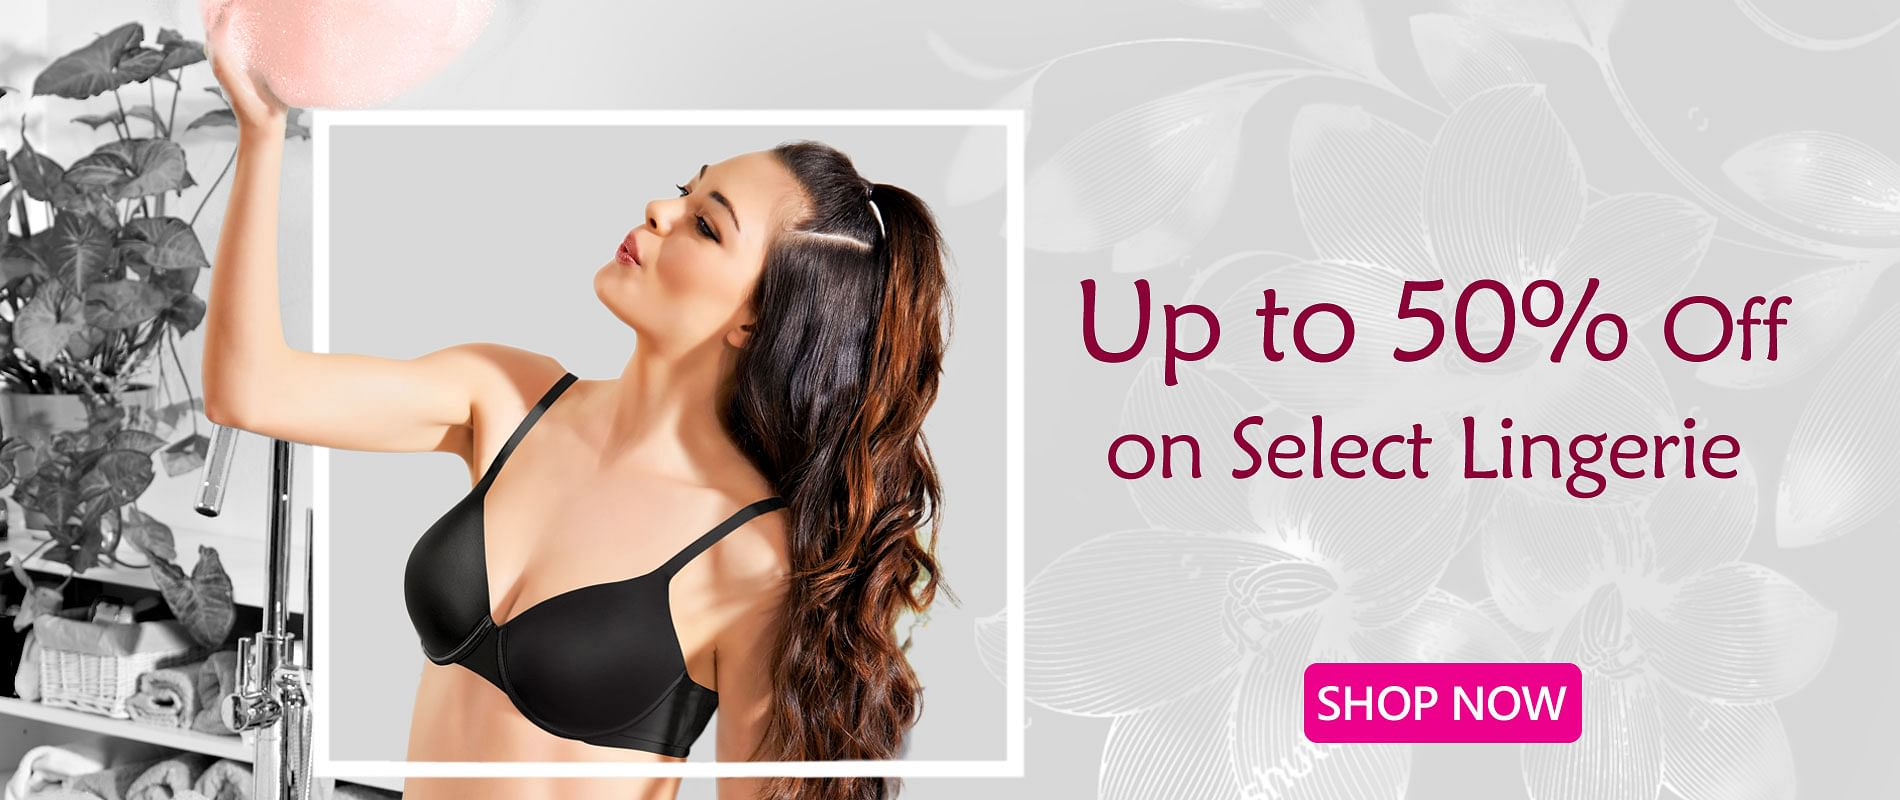 Up to 50% on Select Lingerie Offer